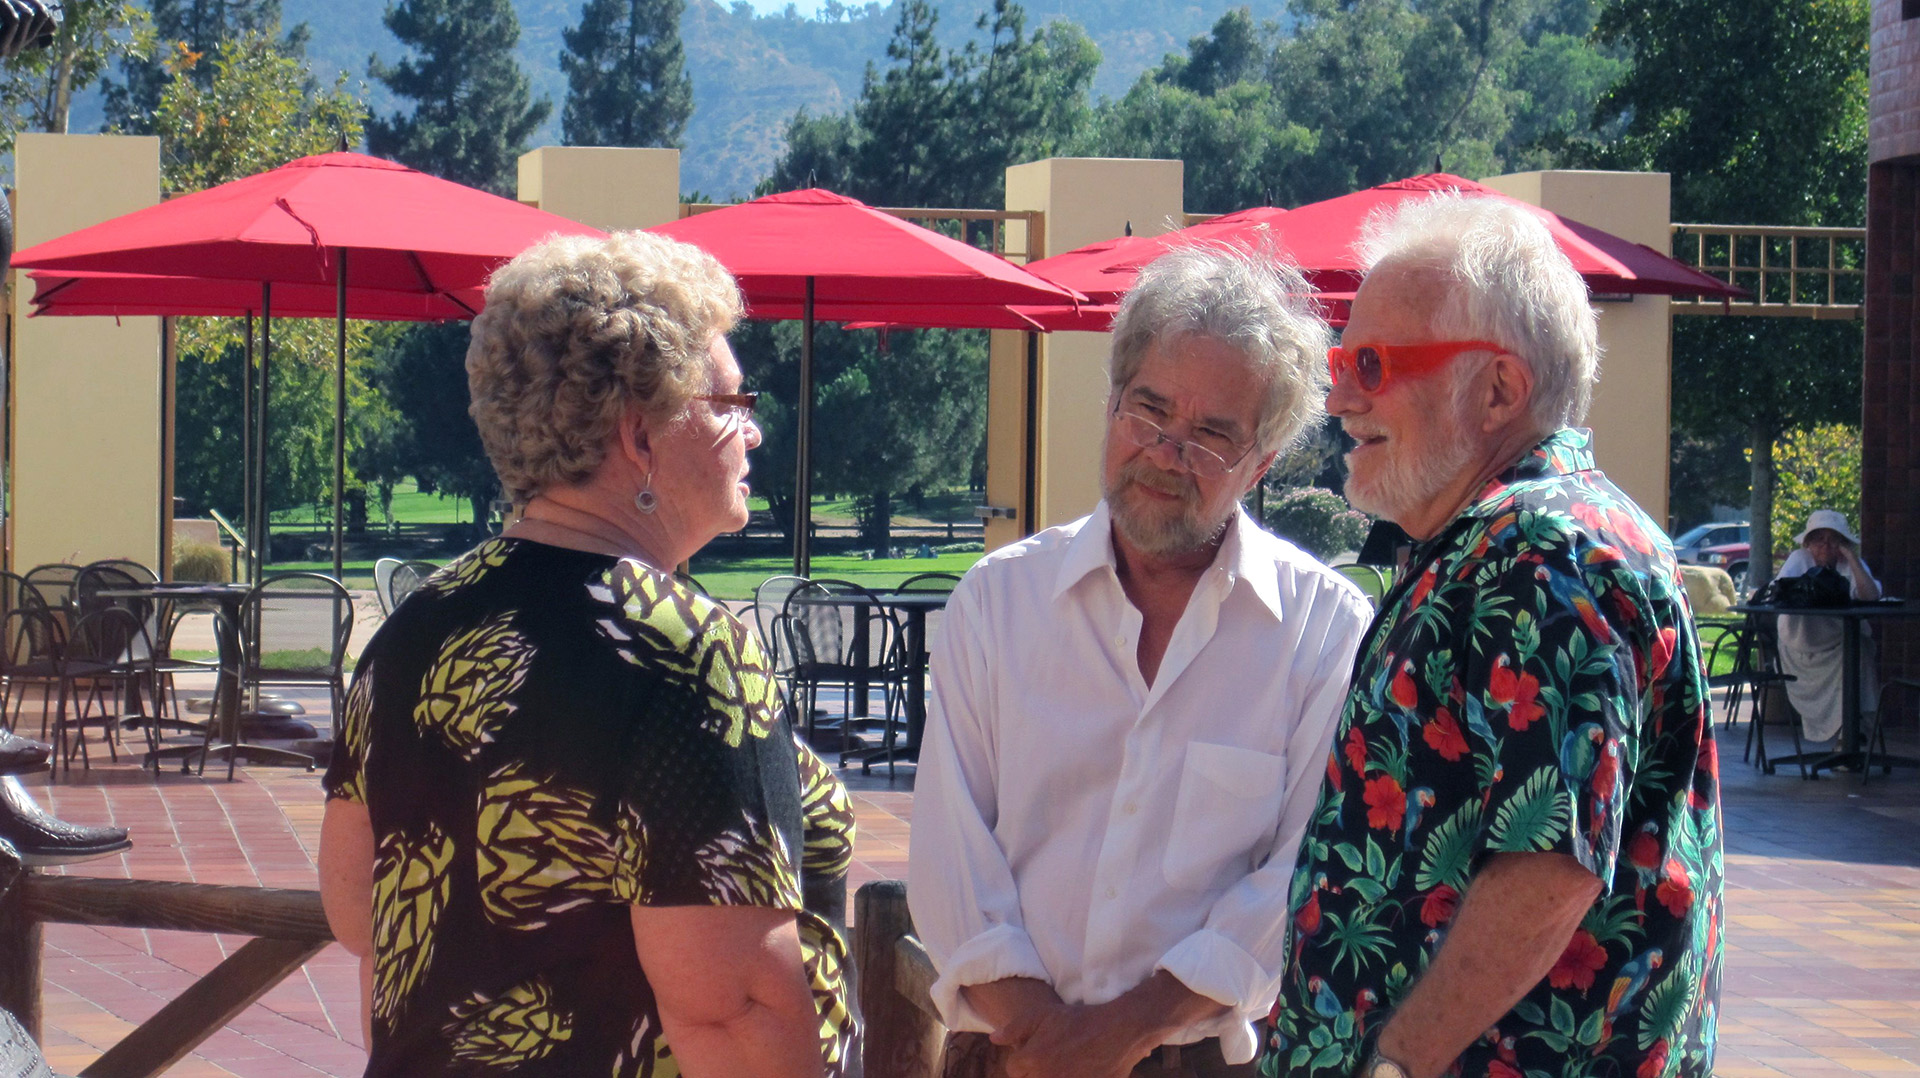 Clela Rorex, Richard Adams, and Tony Sullivan re-united decades after Clela issues the couple's groundbreaking marriage license.